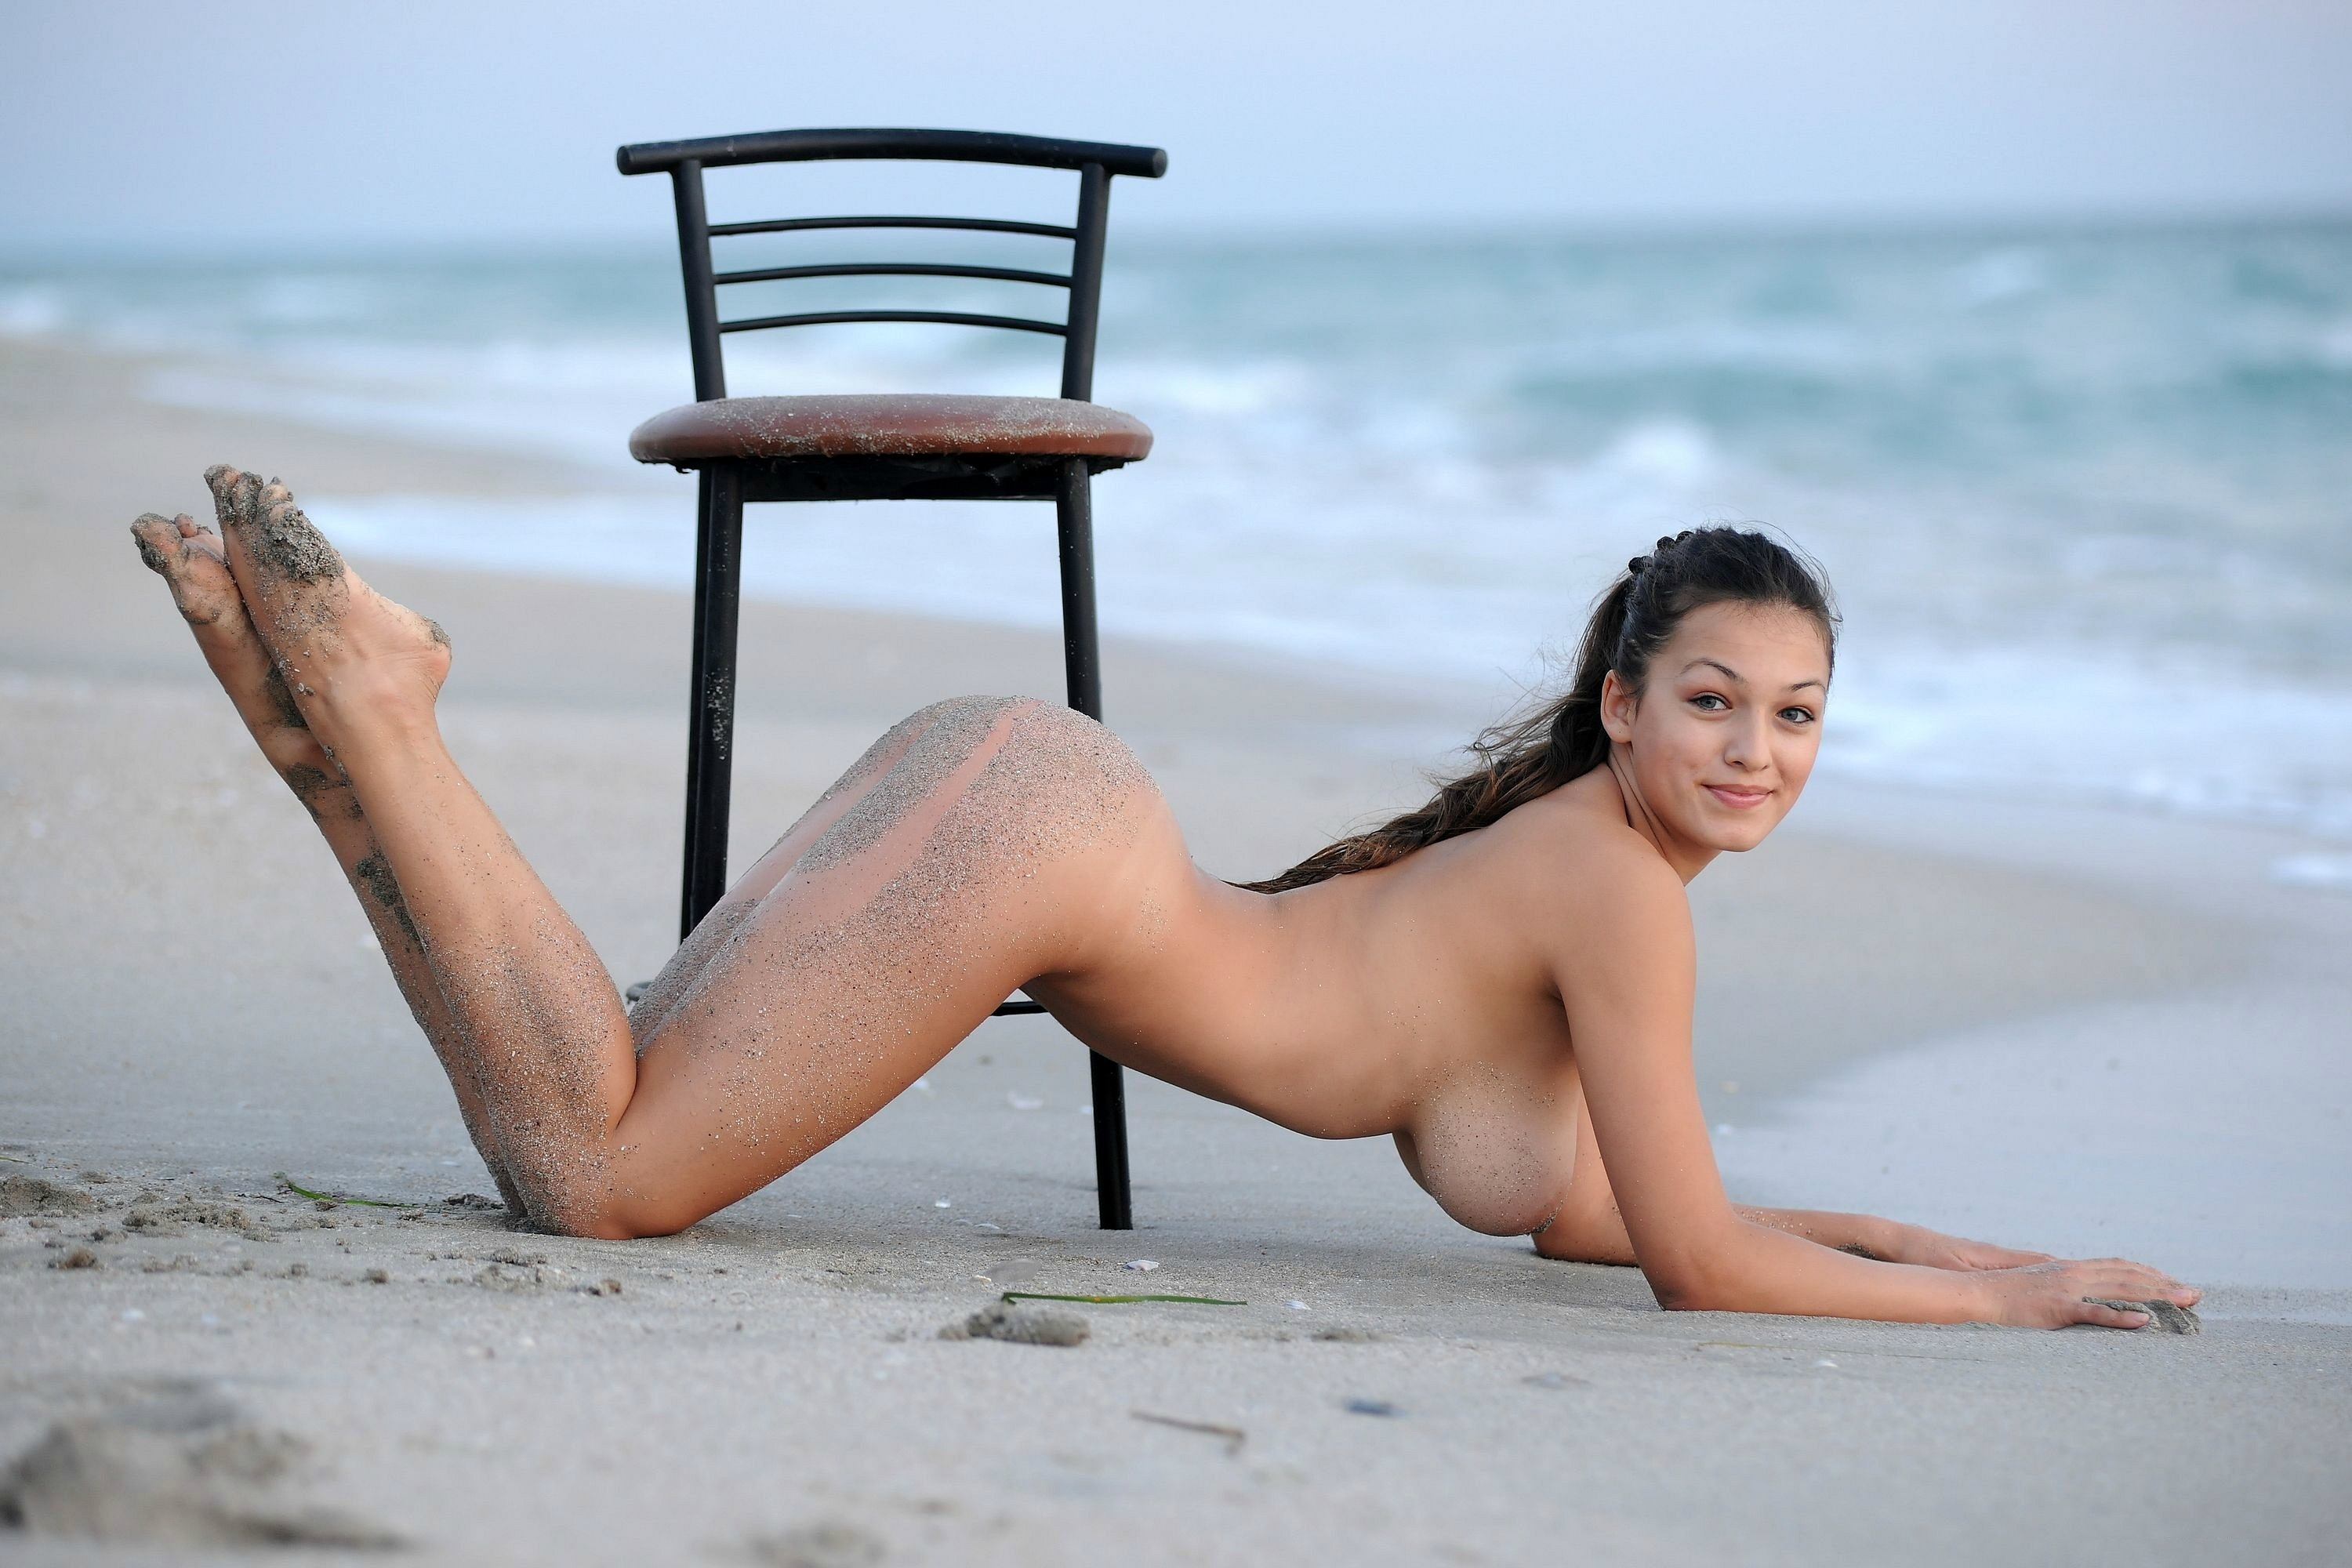 naked girls in beach chairs